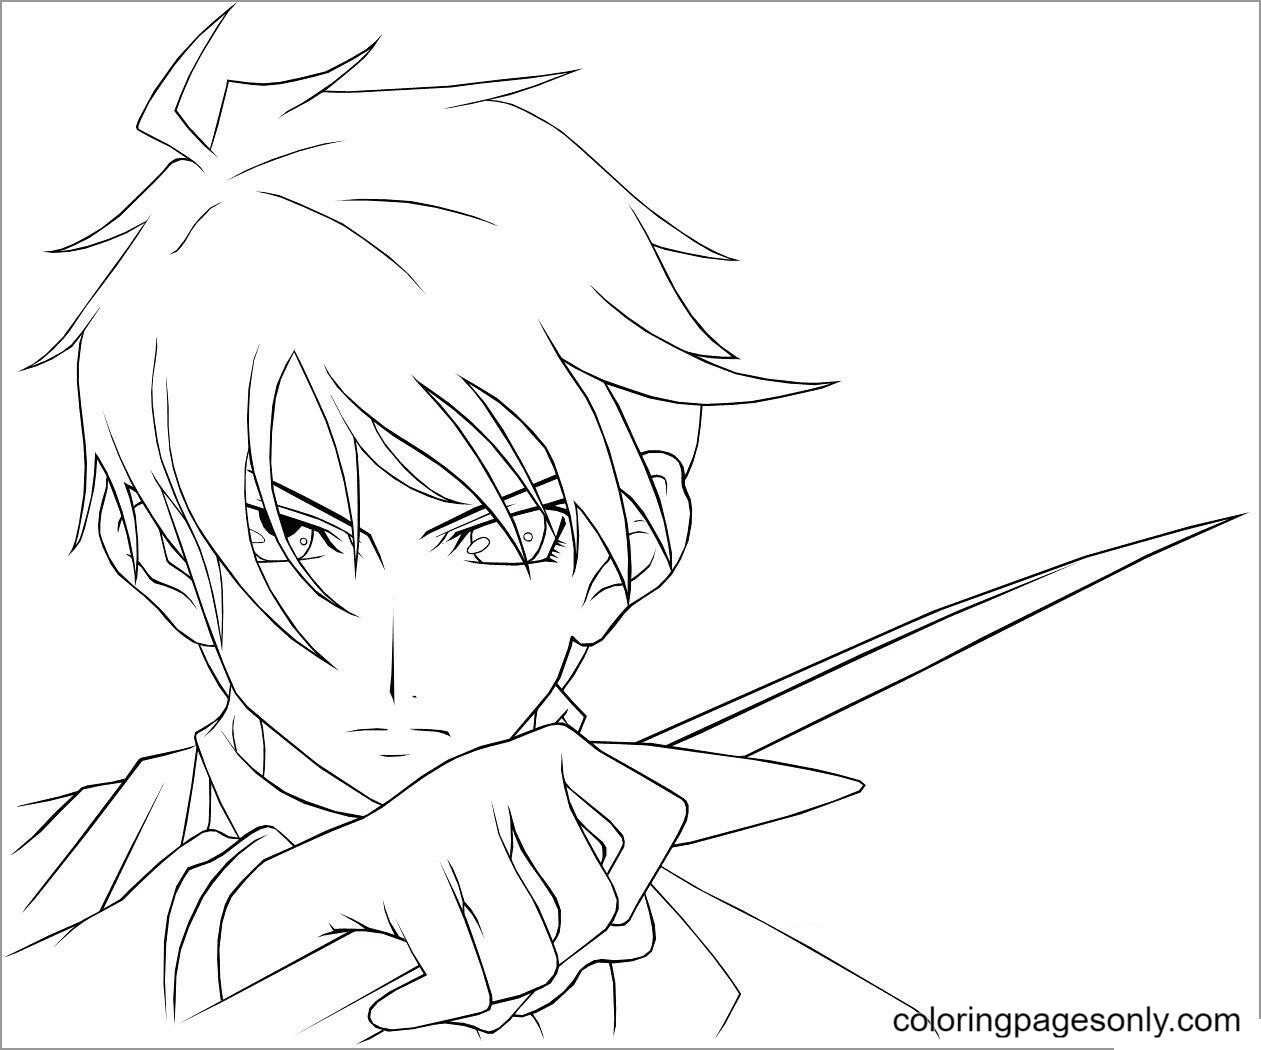 Anime character From Assassination Classroom Coloring Page